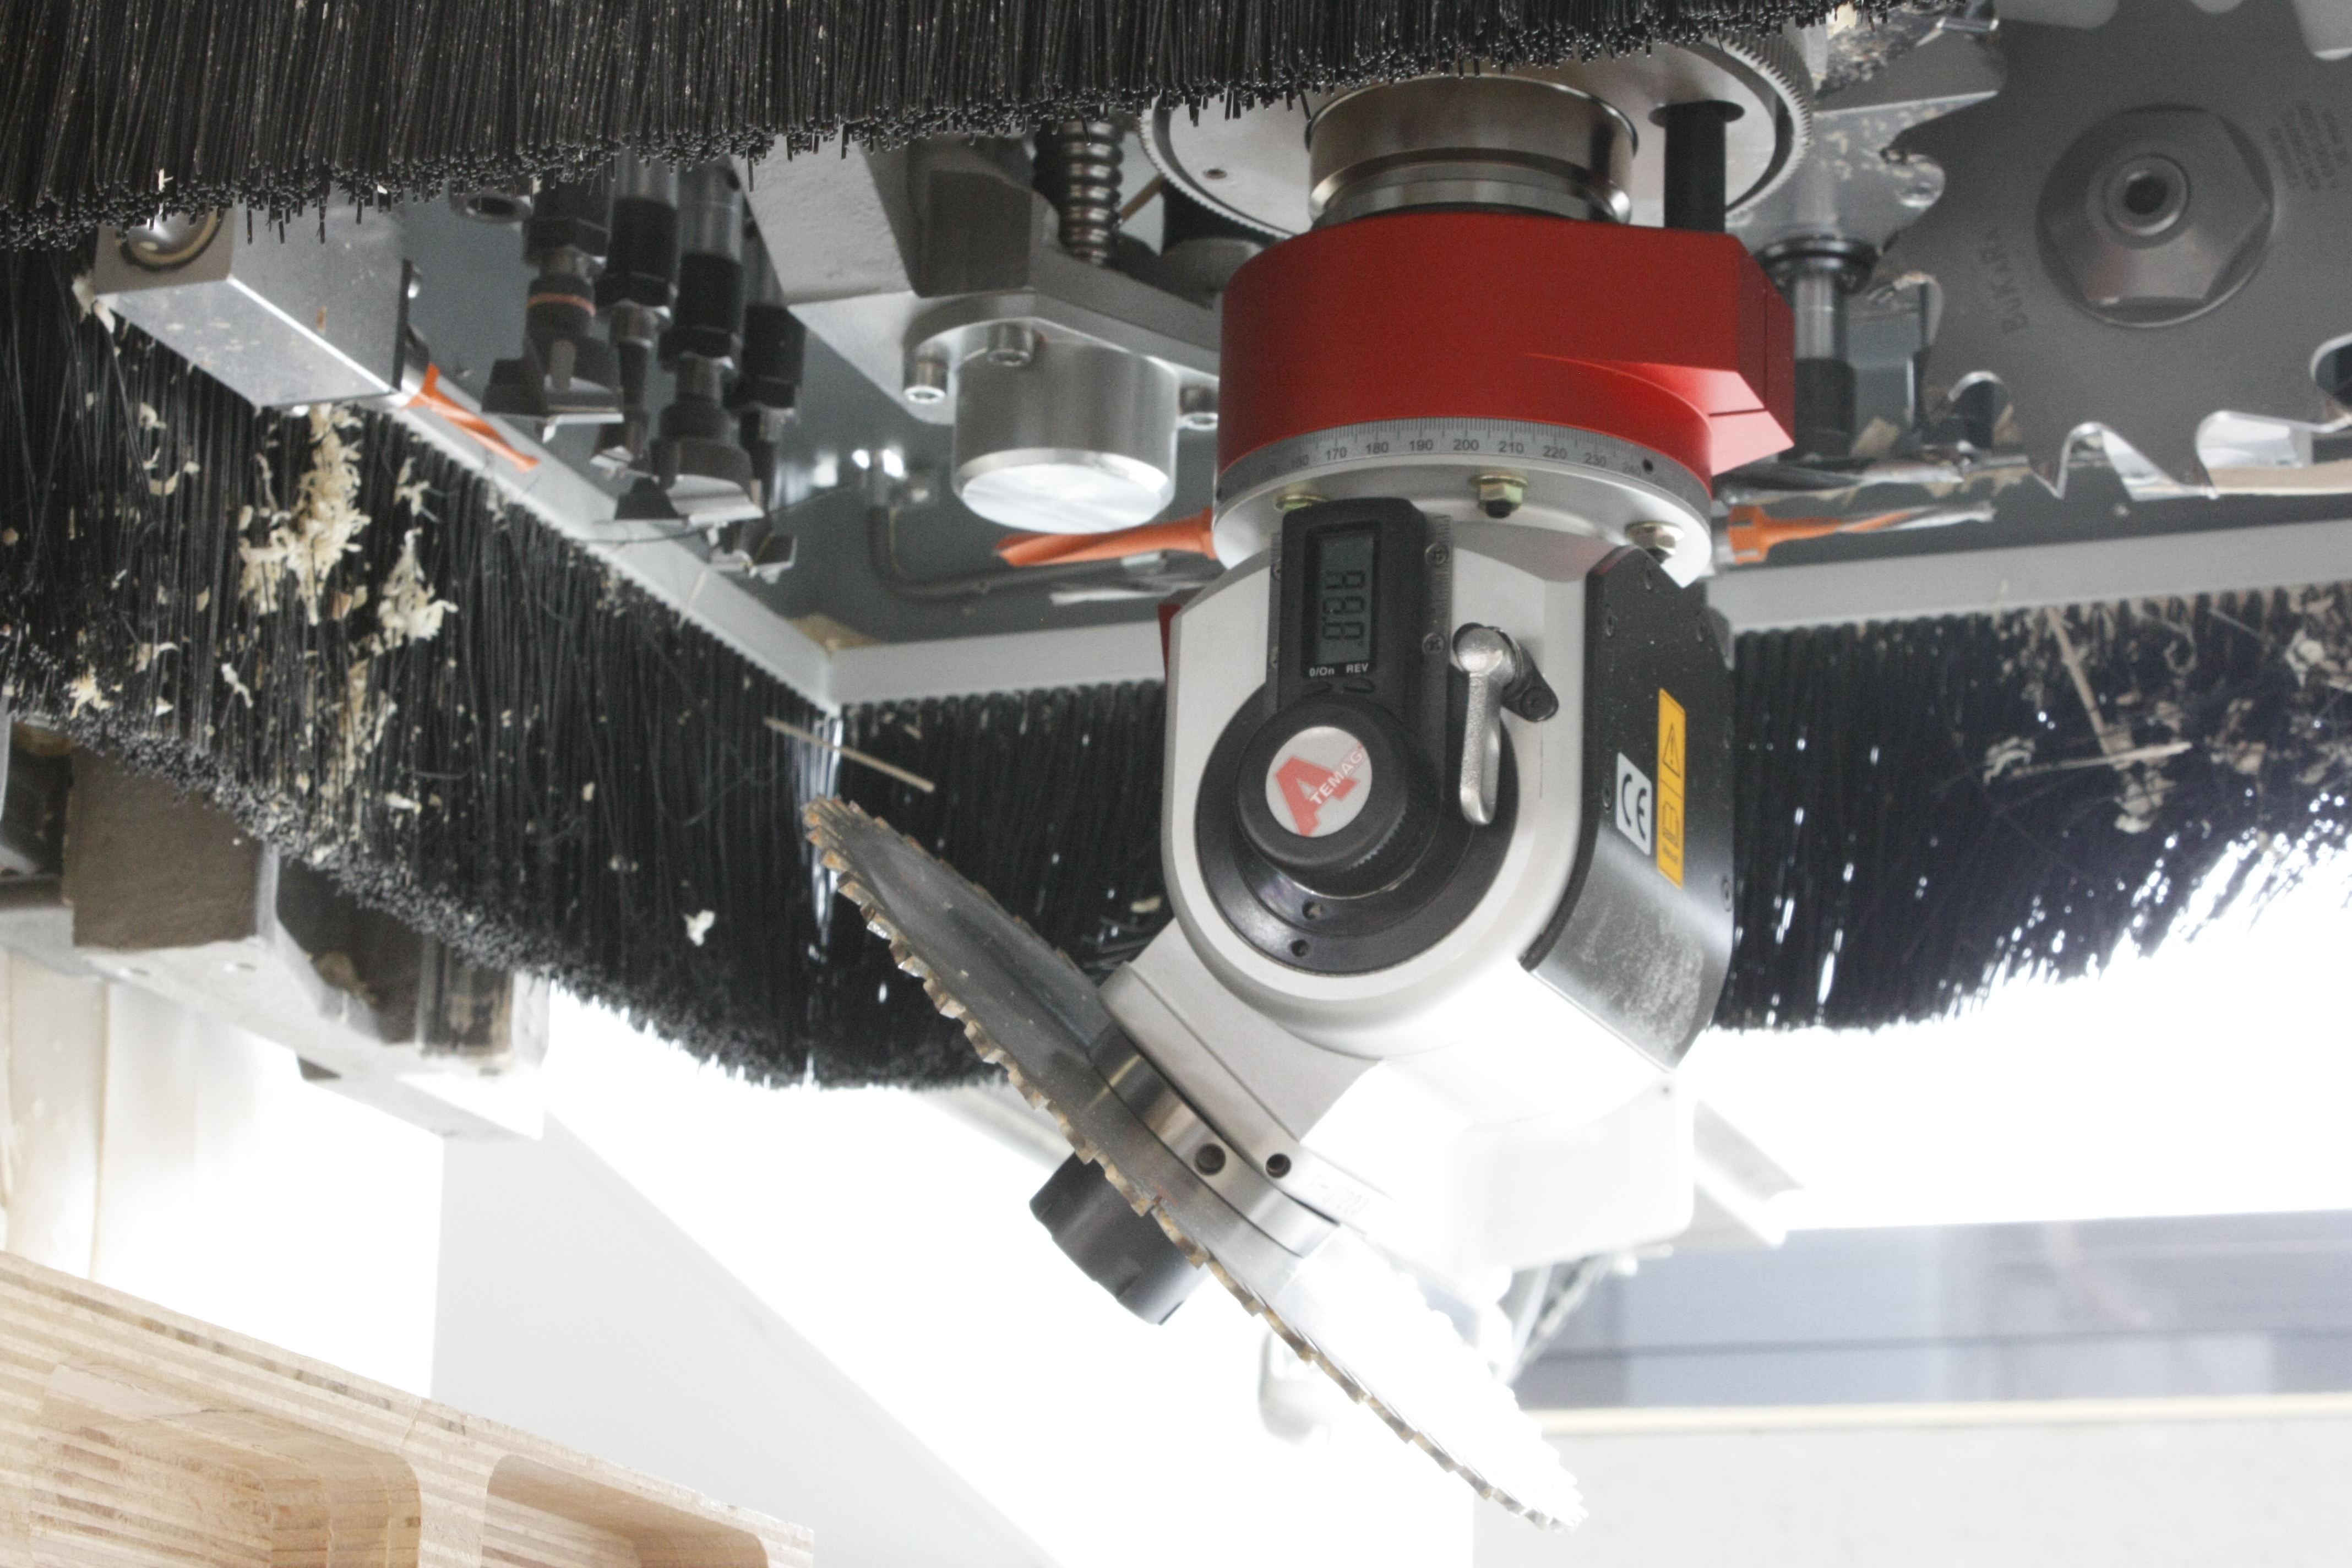 Atemag angular aggregate with saw blade on CNC machining center